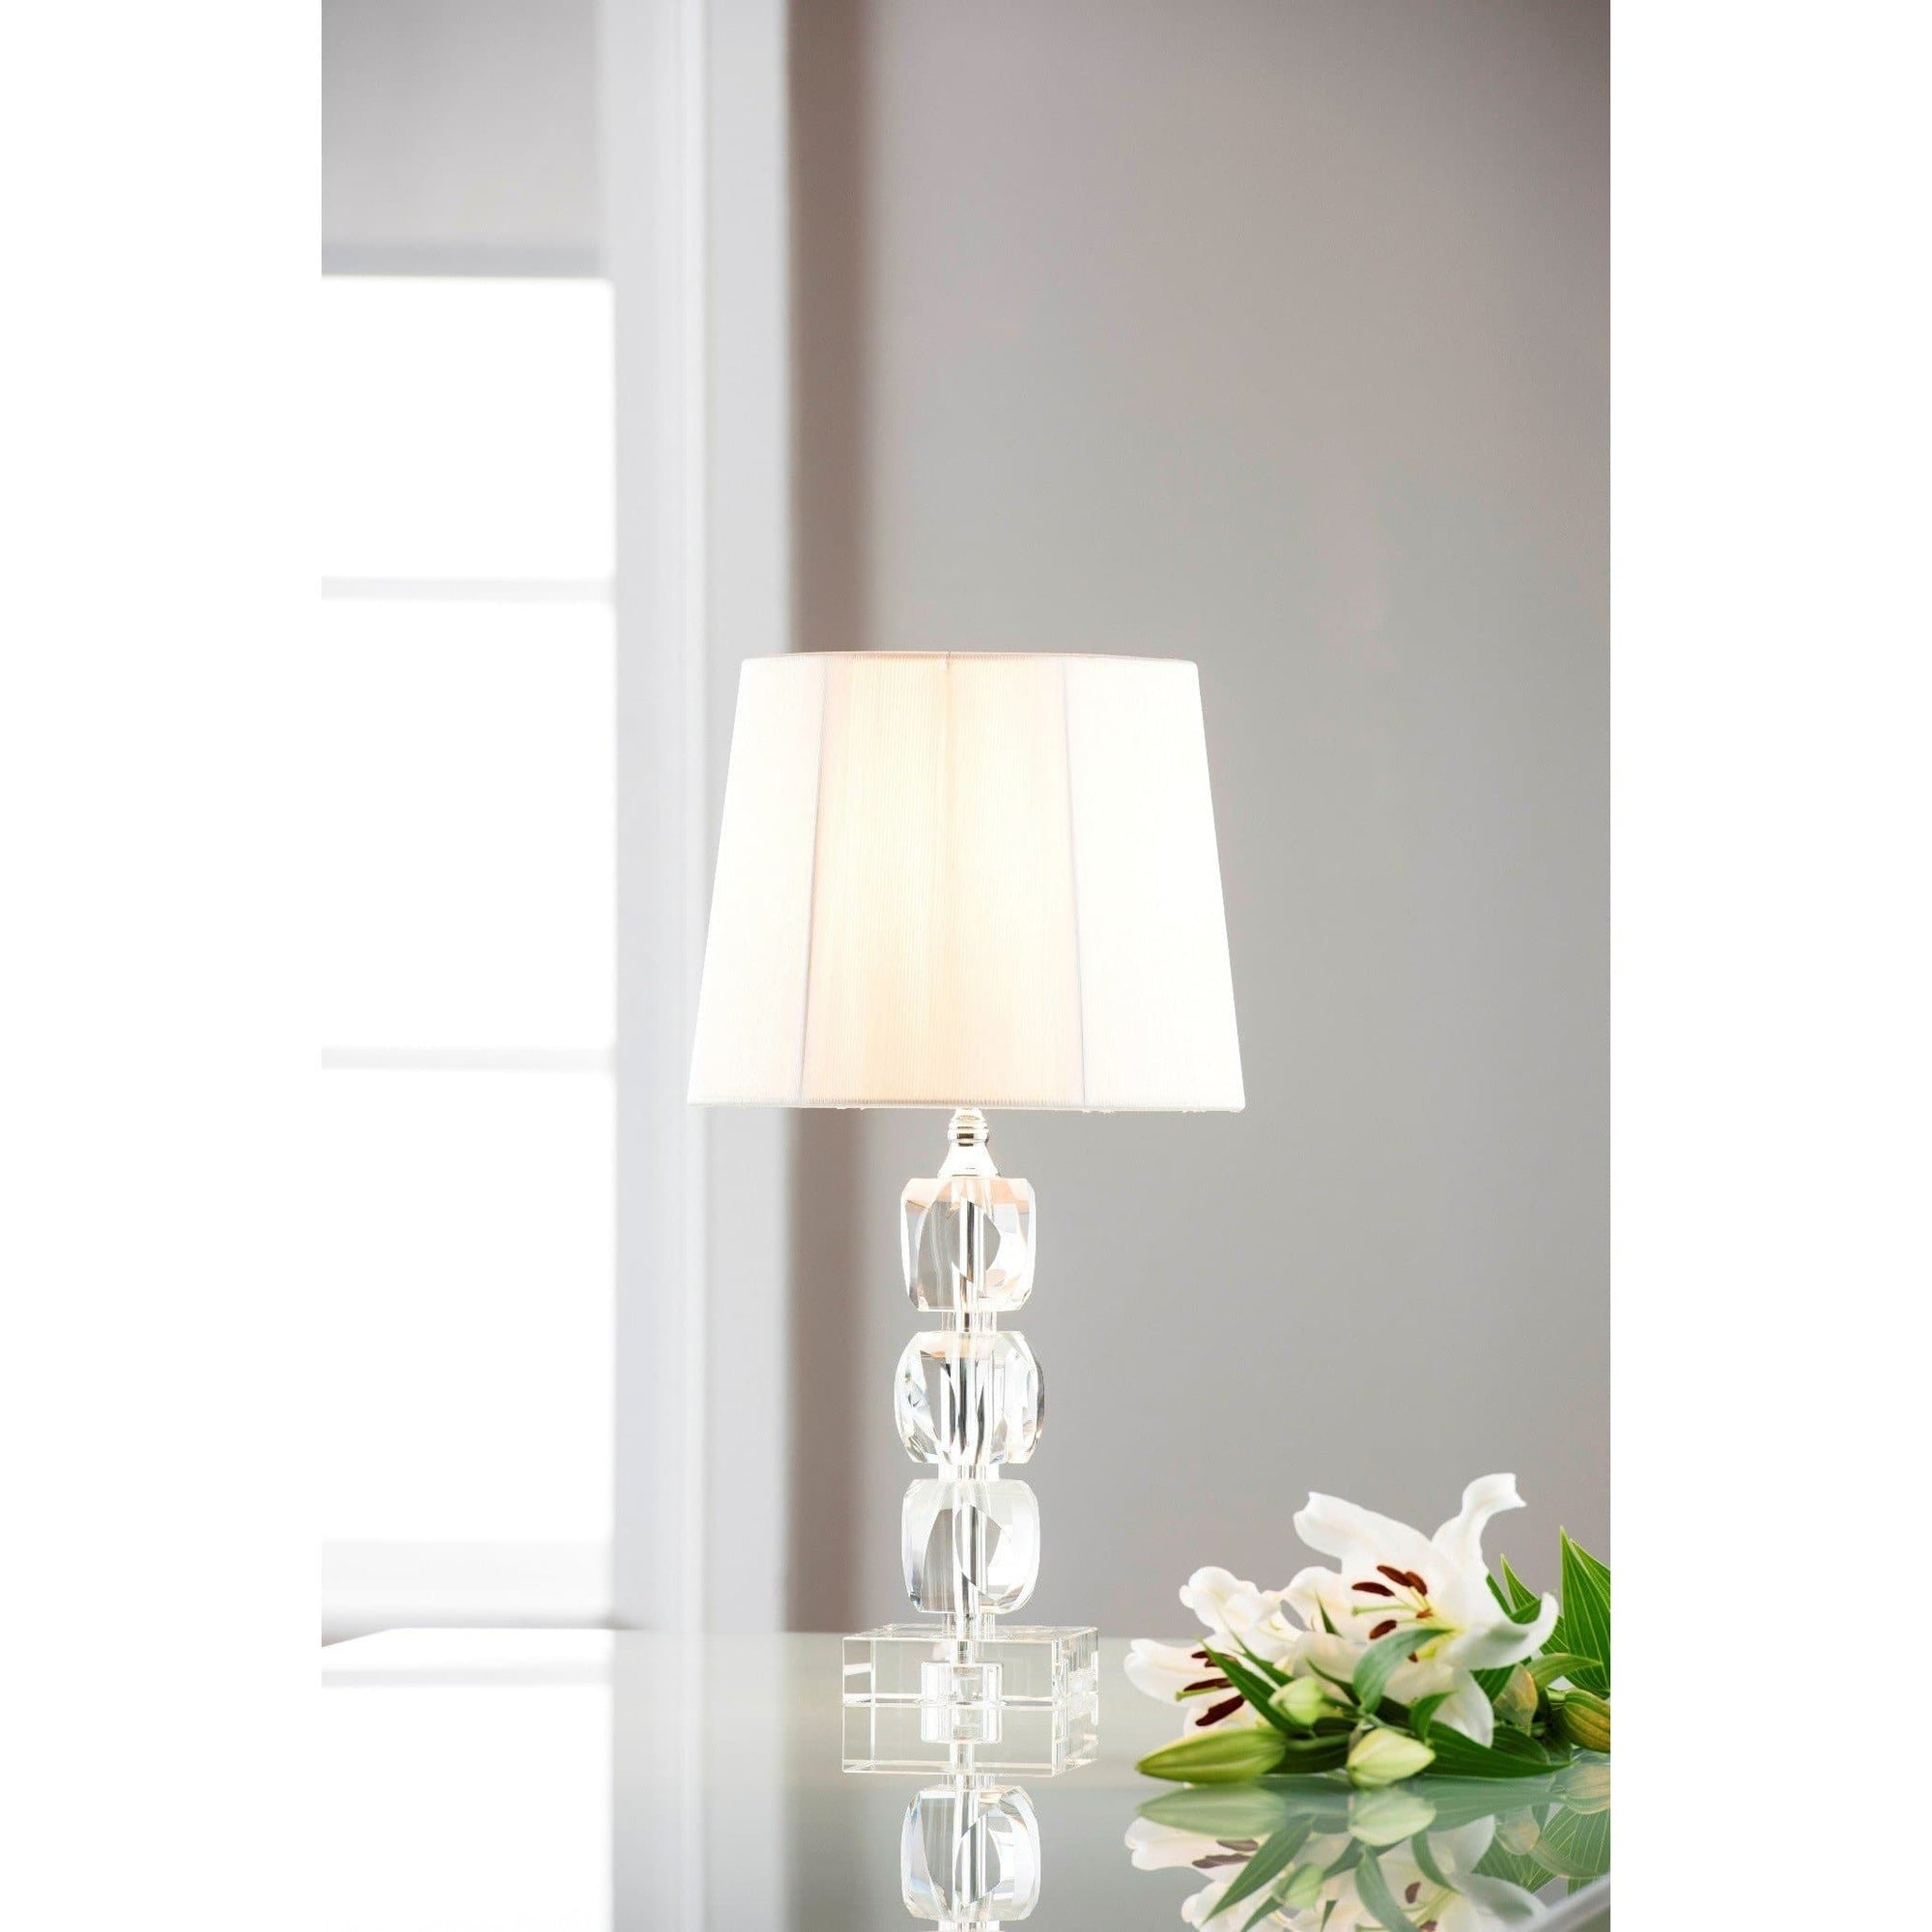 Engraved Facet Small Lamp & Shade (IRL/UK Fittings)